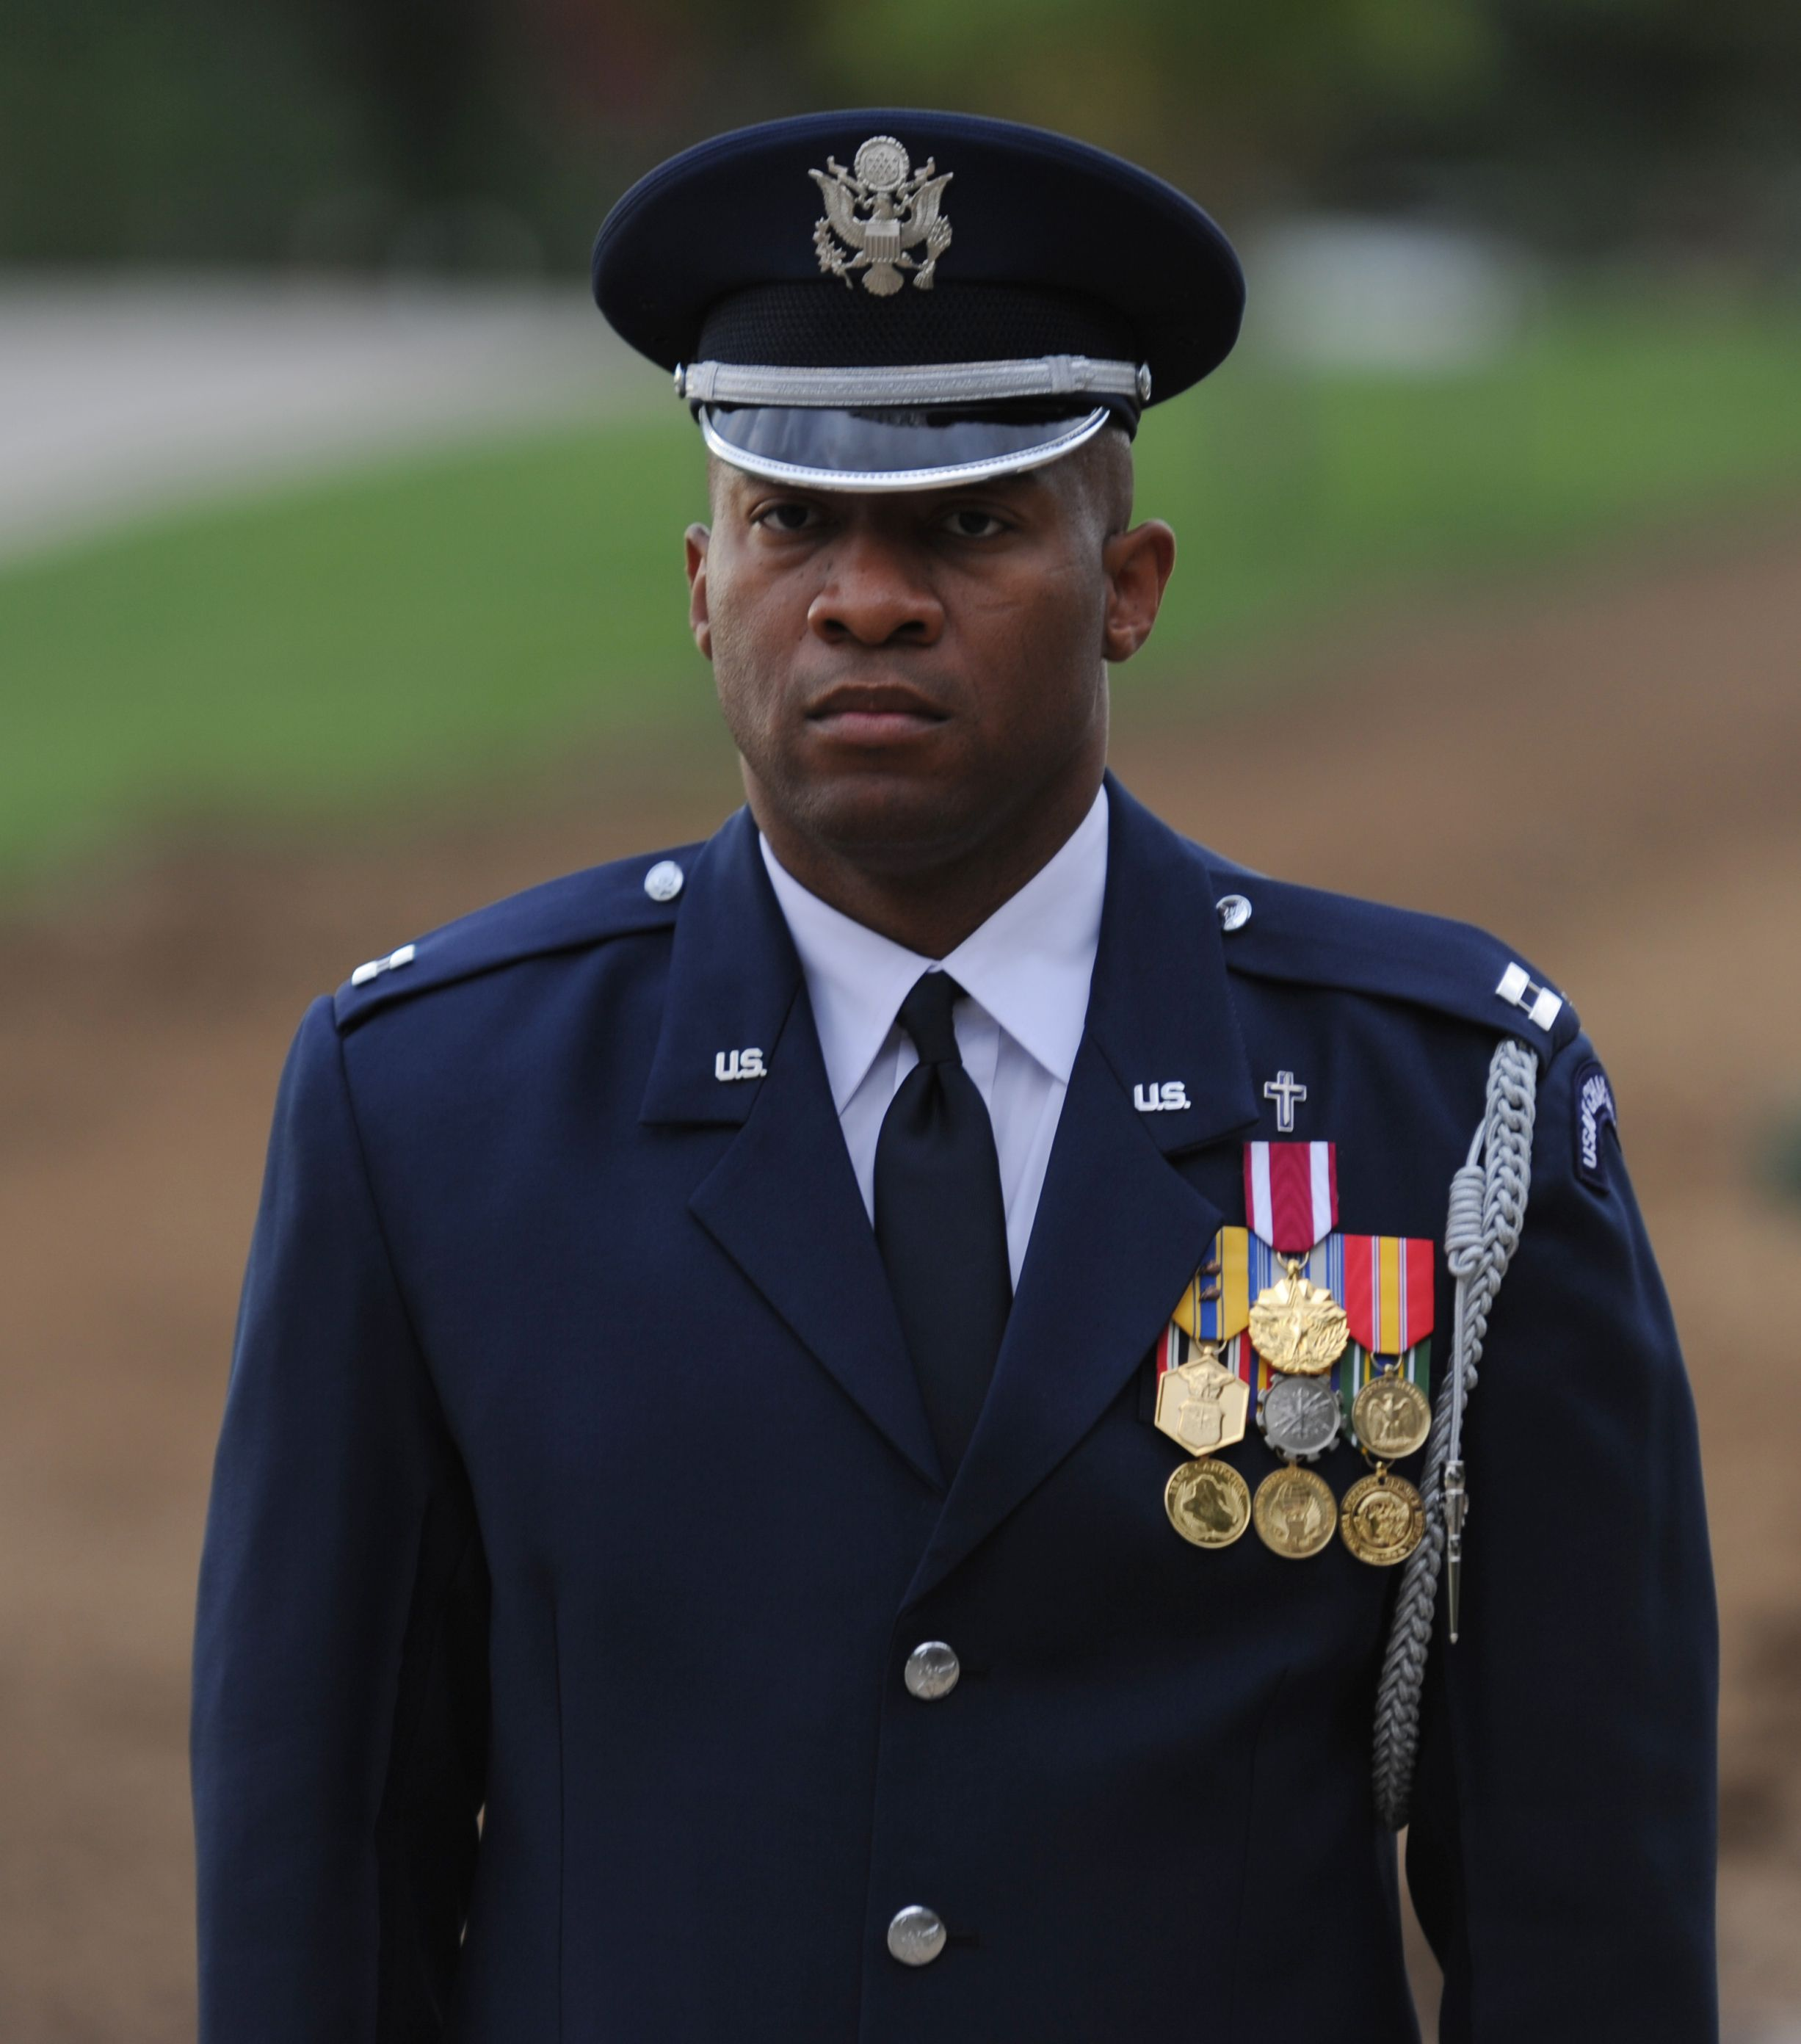 images of usaf uniform Google Search UNITED STATES AIR